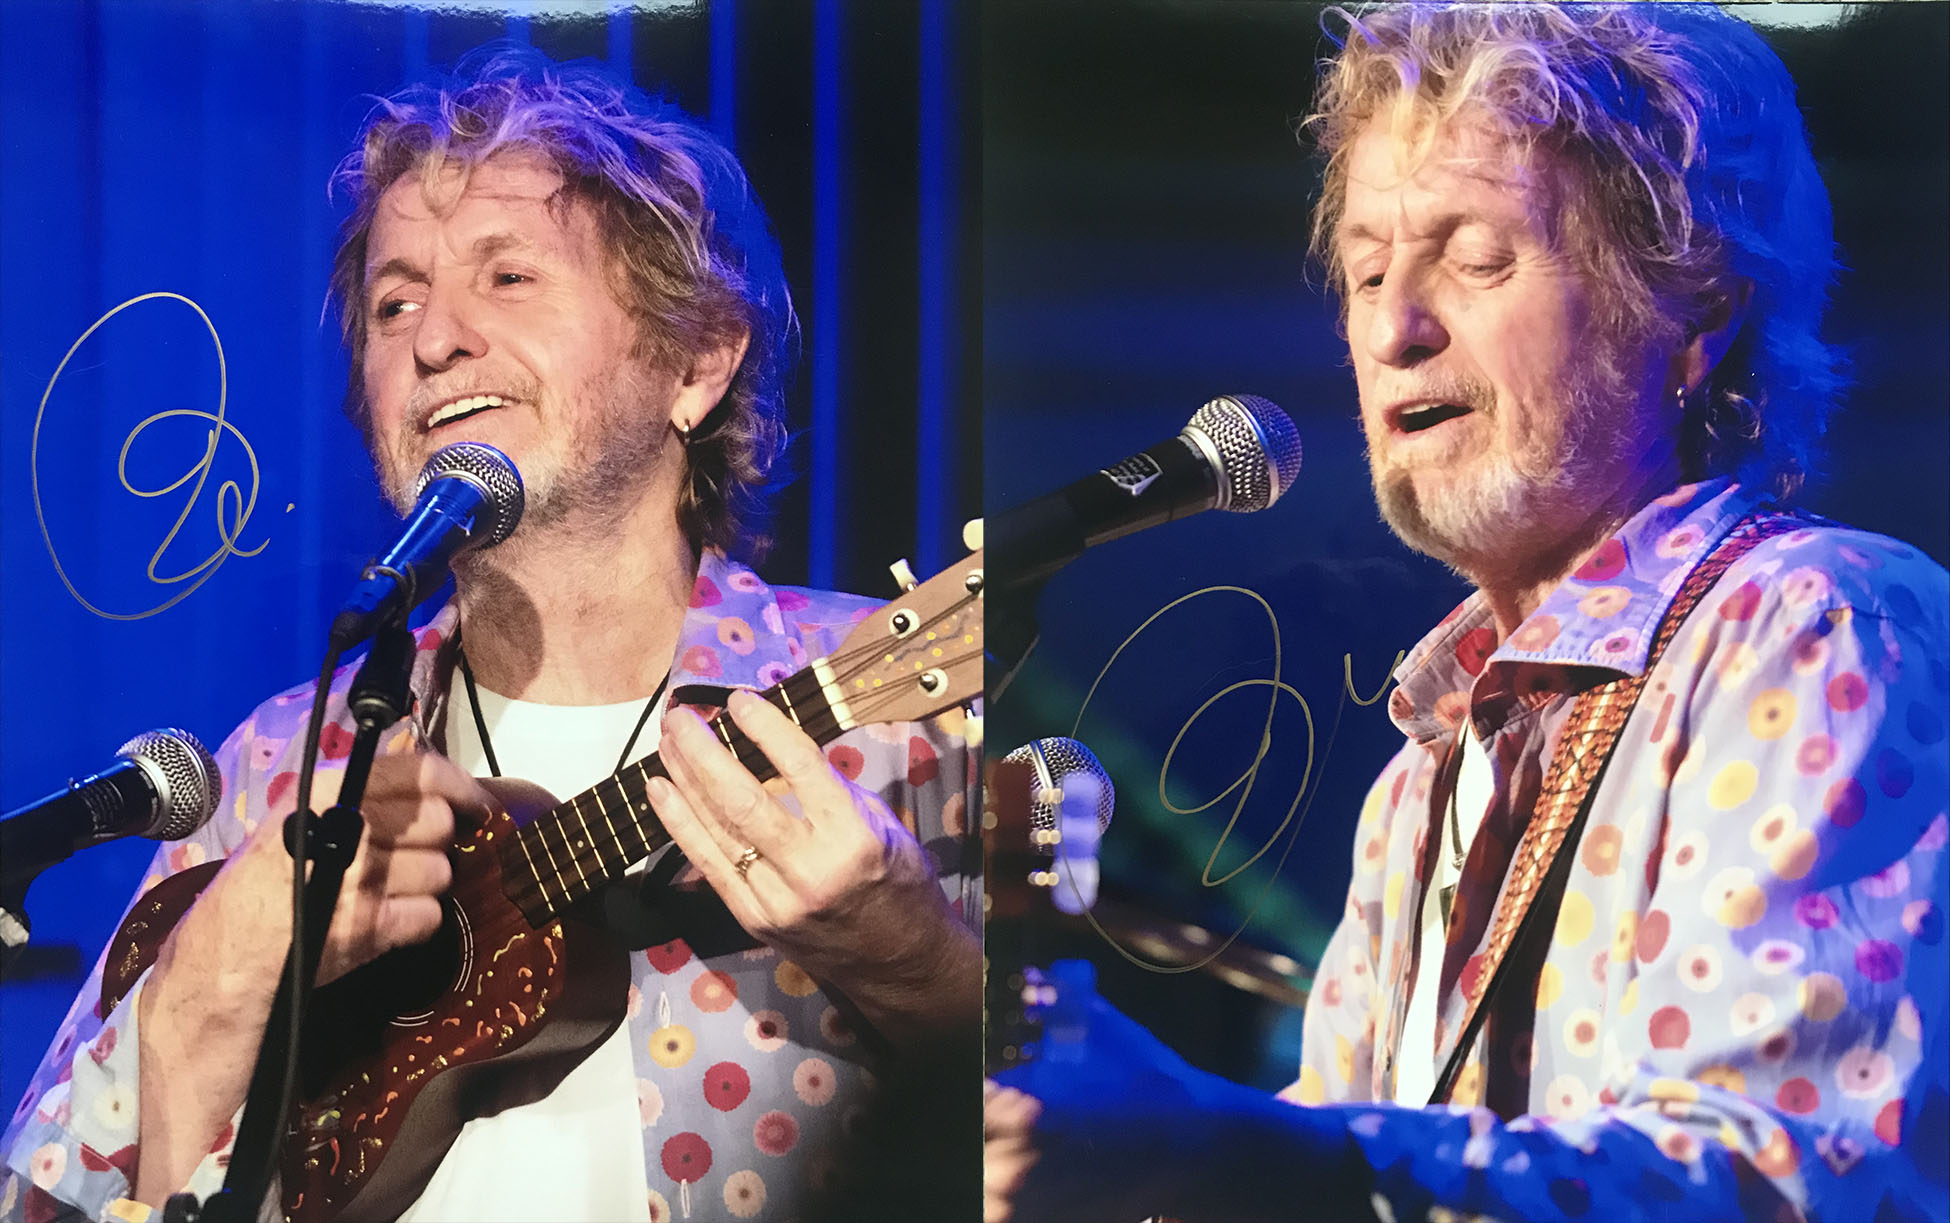 Jon Anderson signature on photos from the Tupelo Music Hall, 2-14